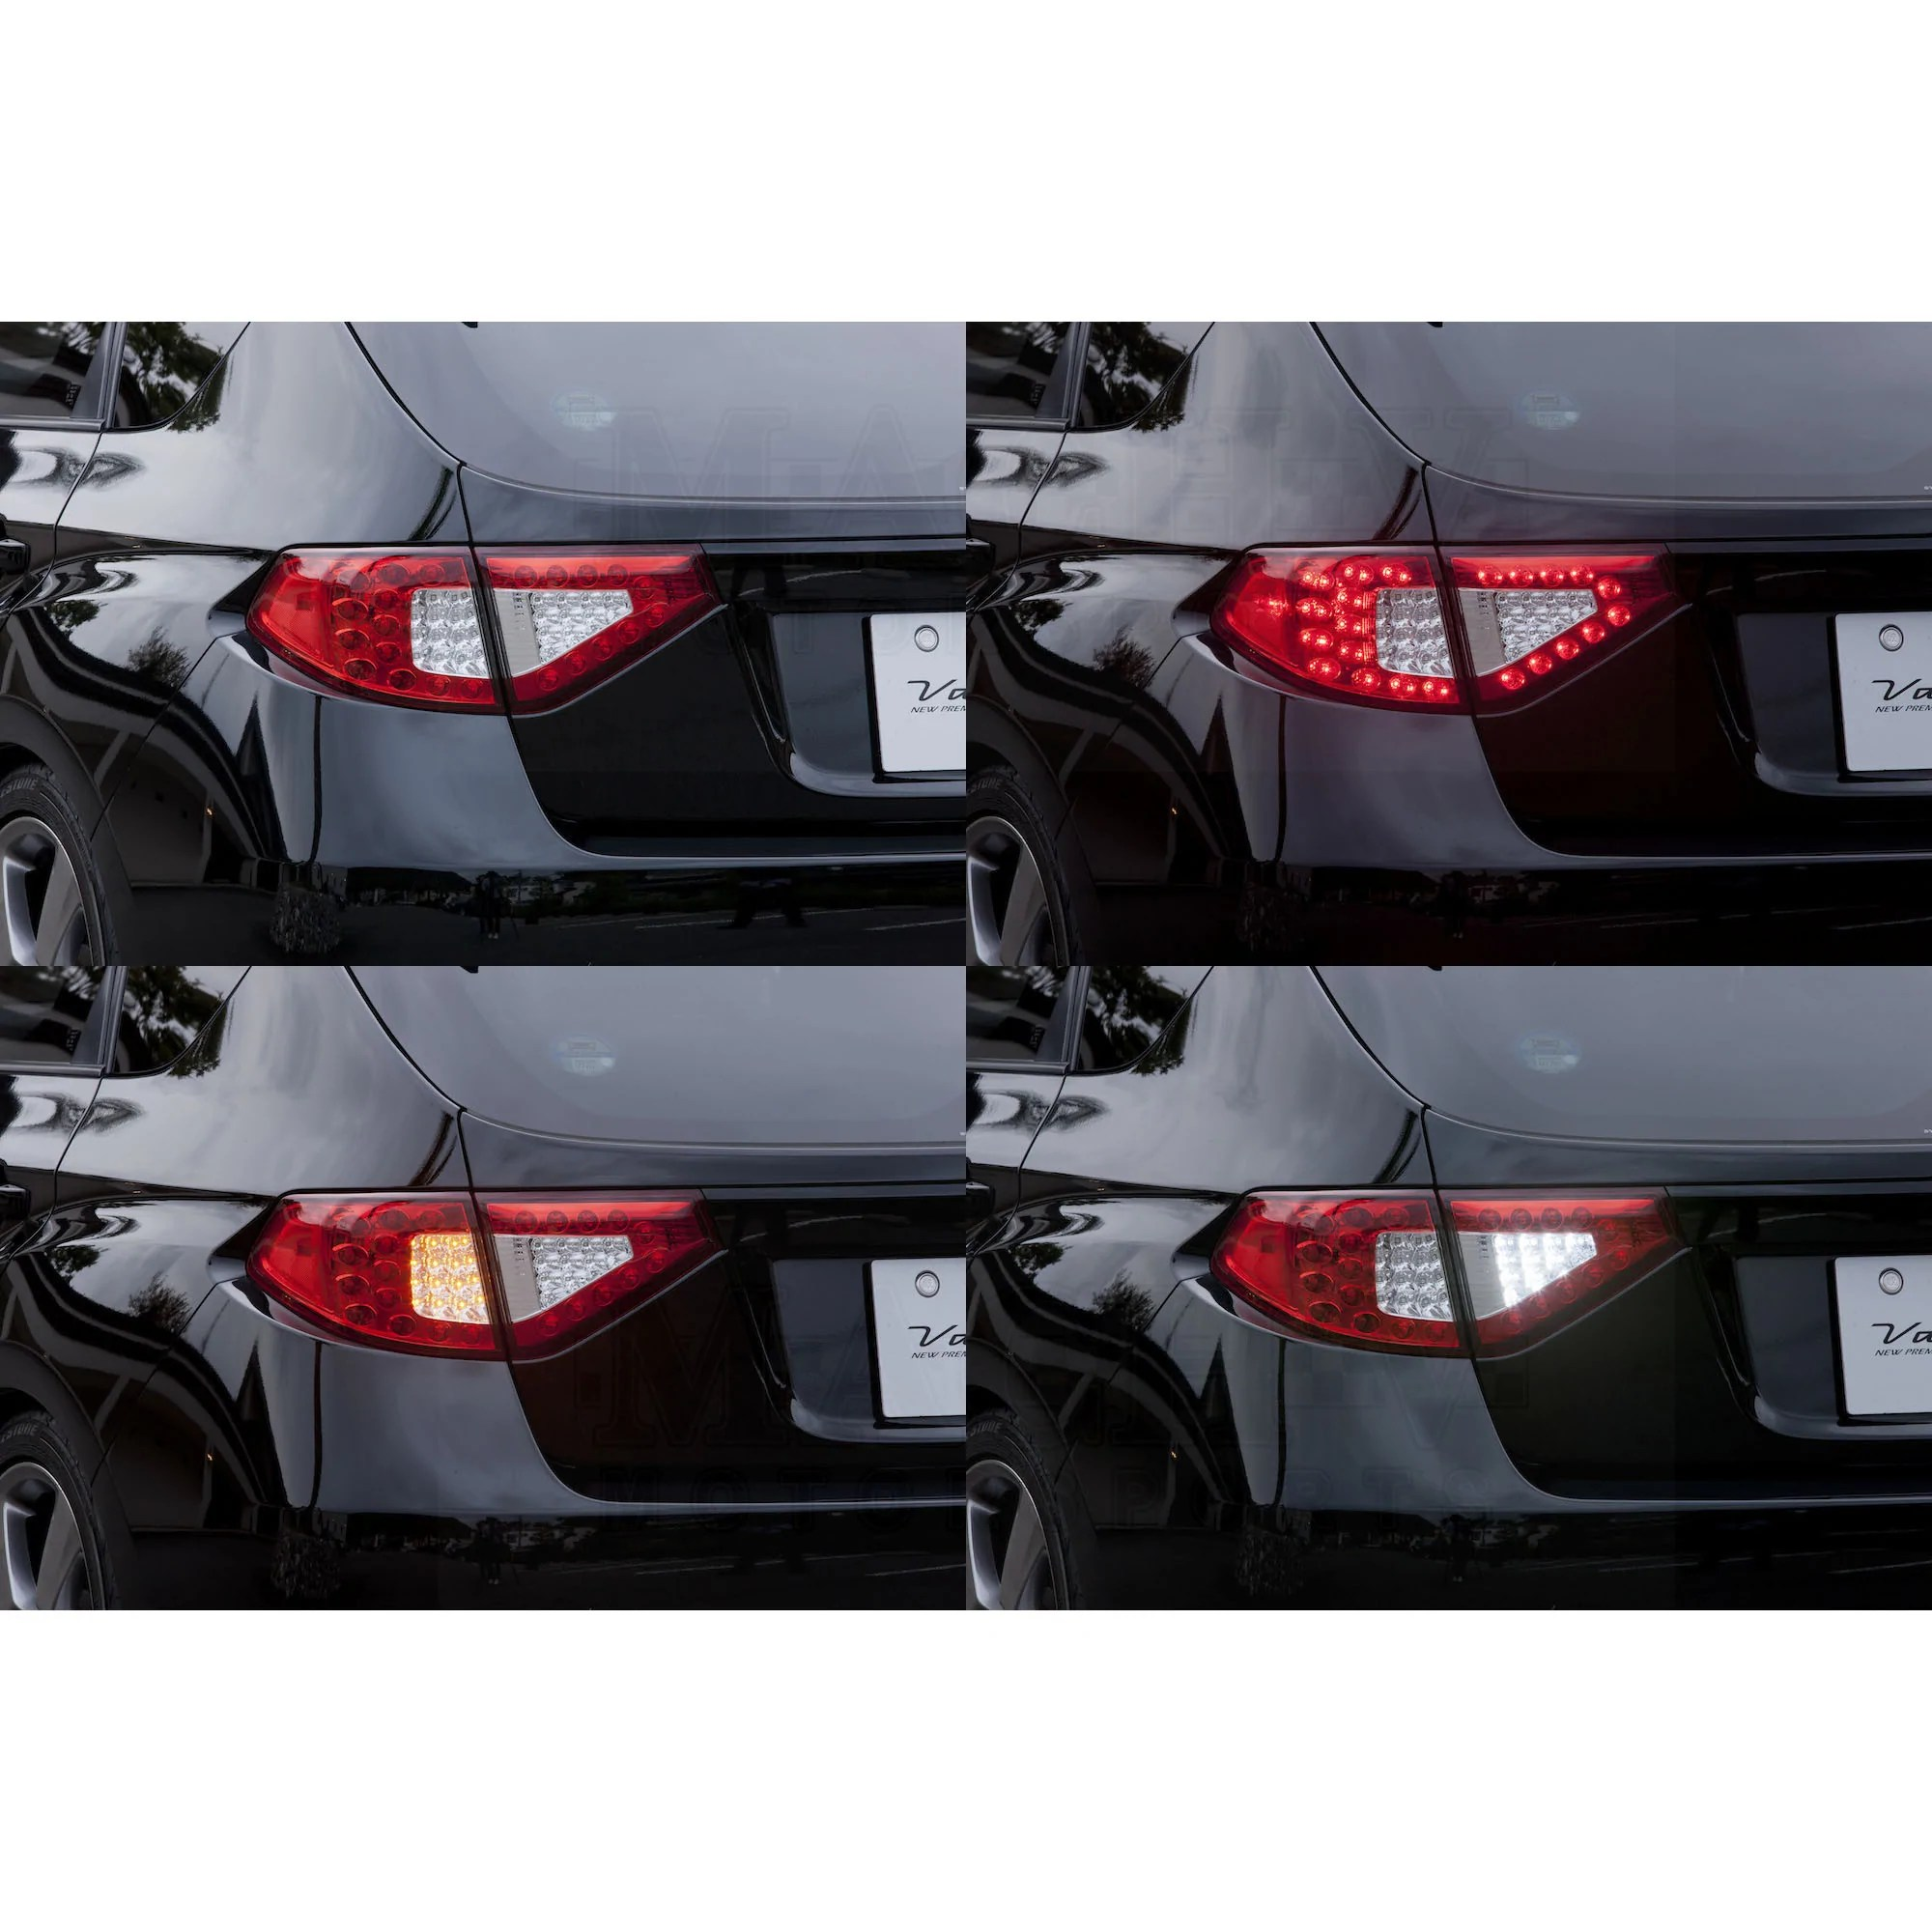 small resolution of  red chrome valenti tail lamp gr gh lighting modes